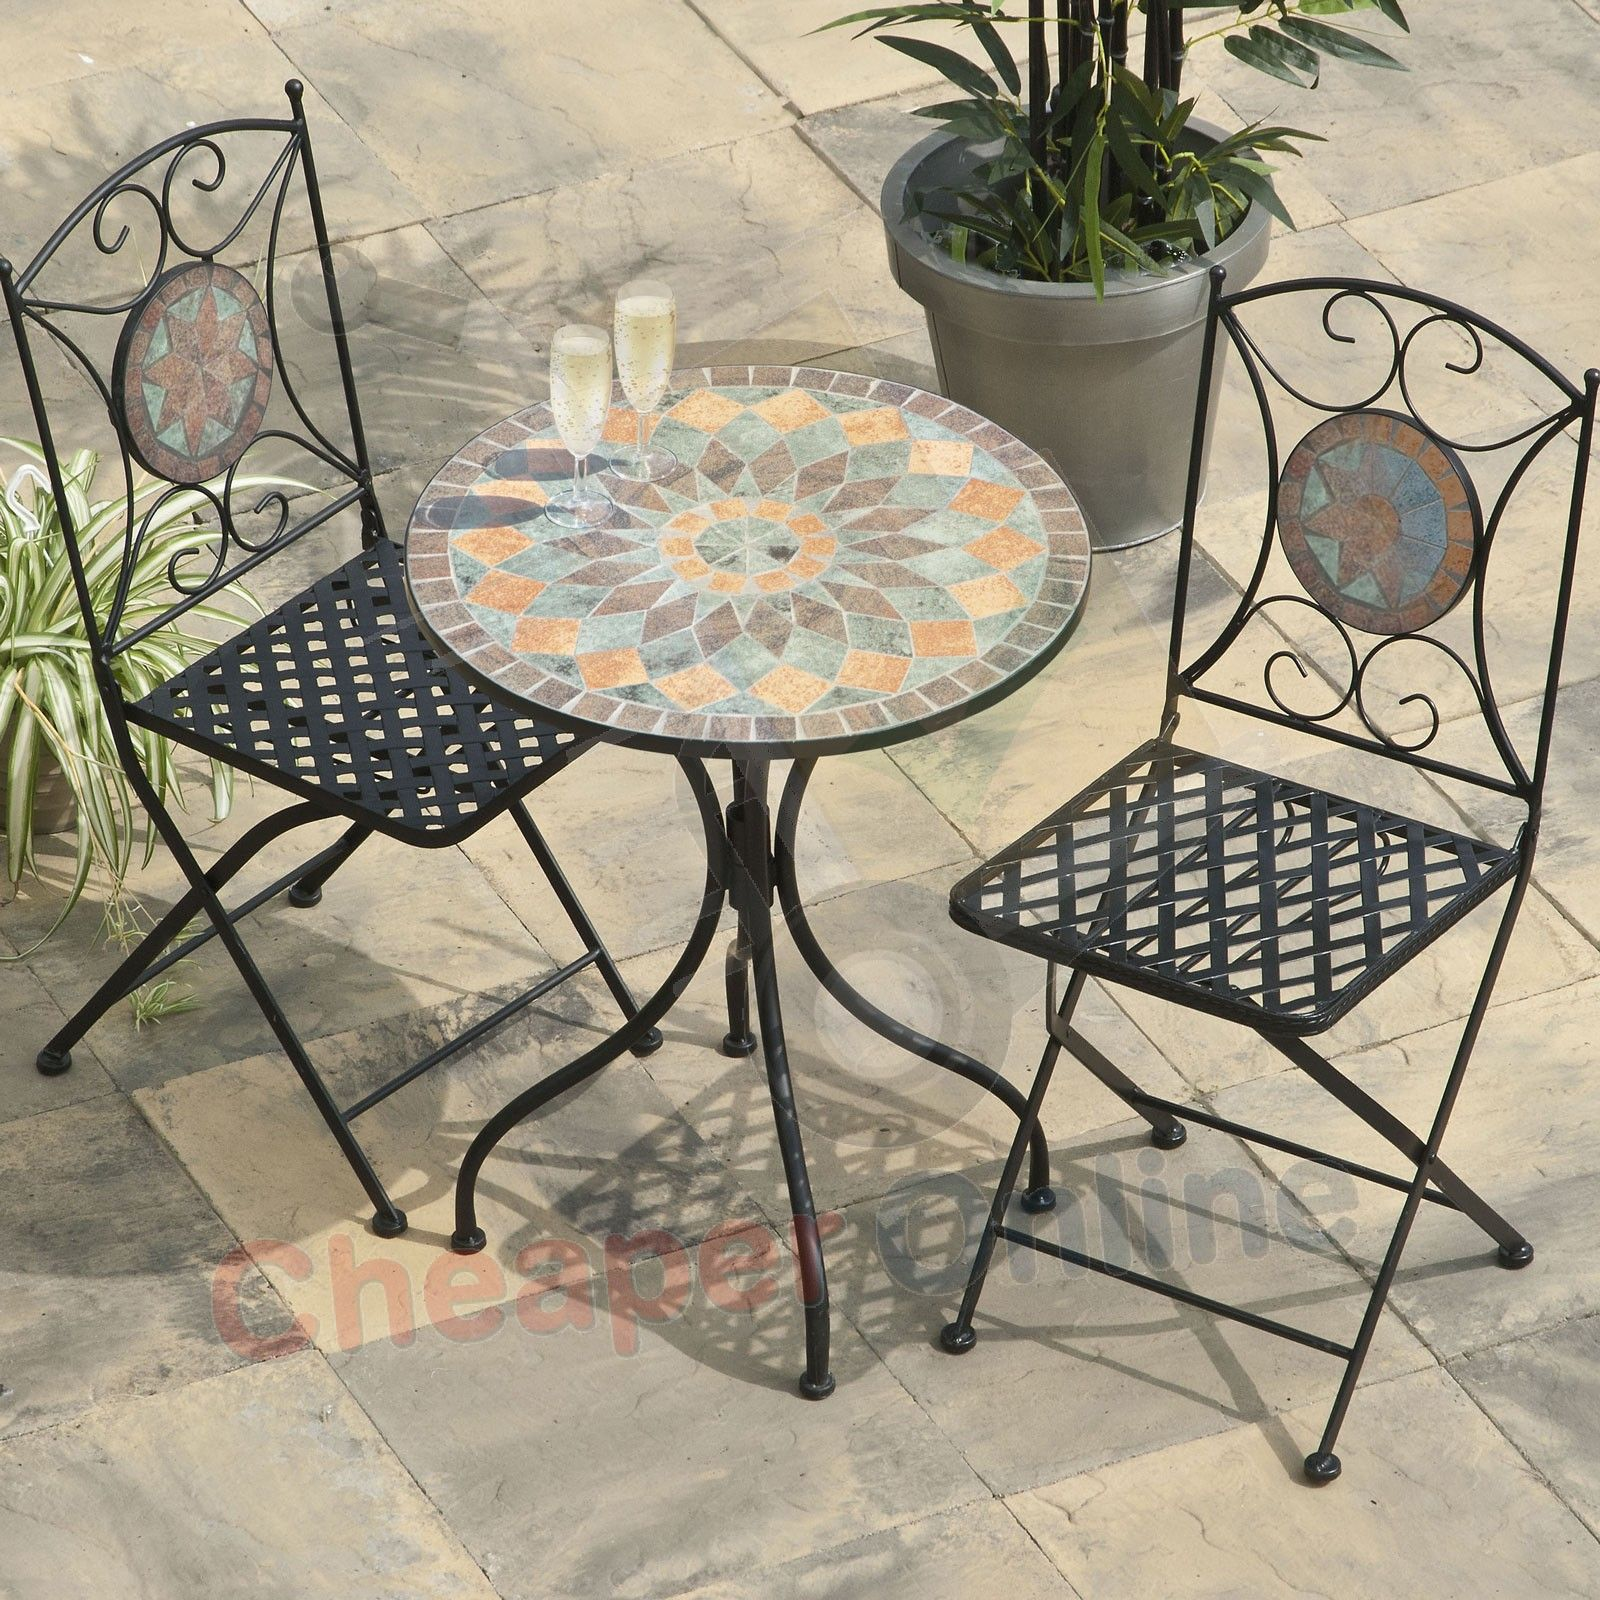 Explore Metal Patio Furniture, Table And Chairs, And More!